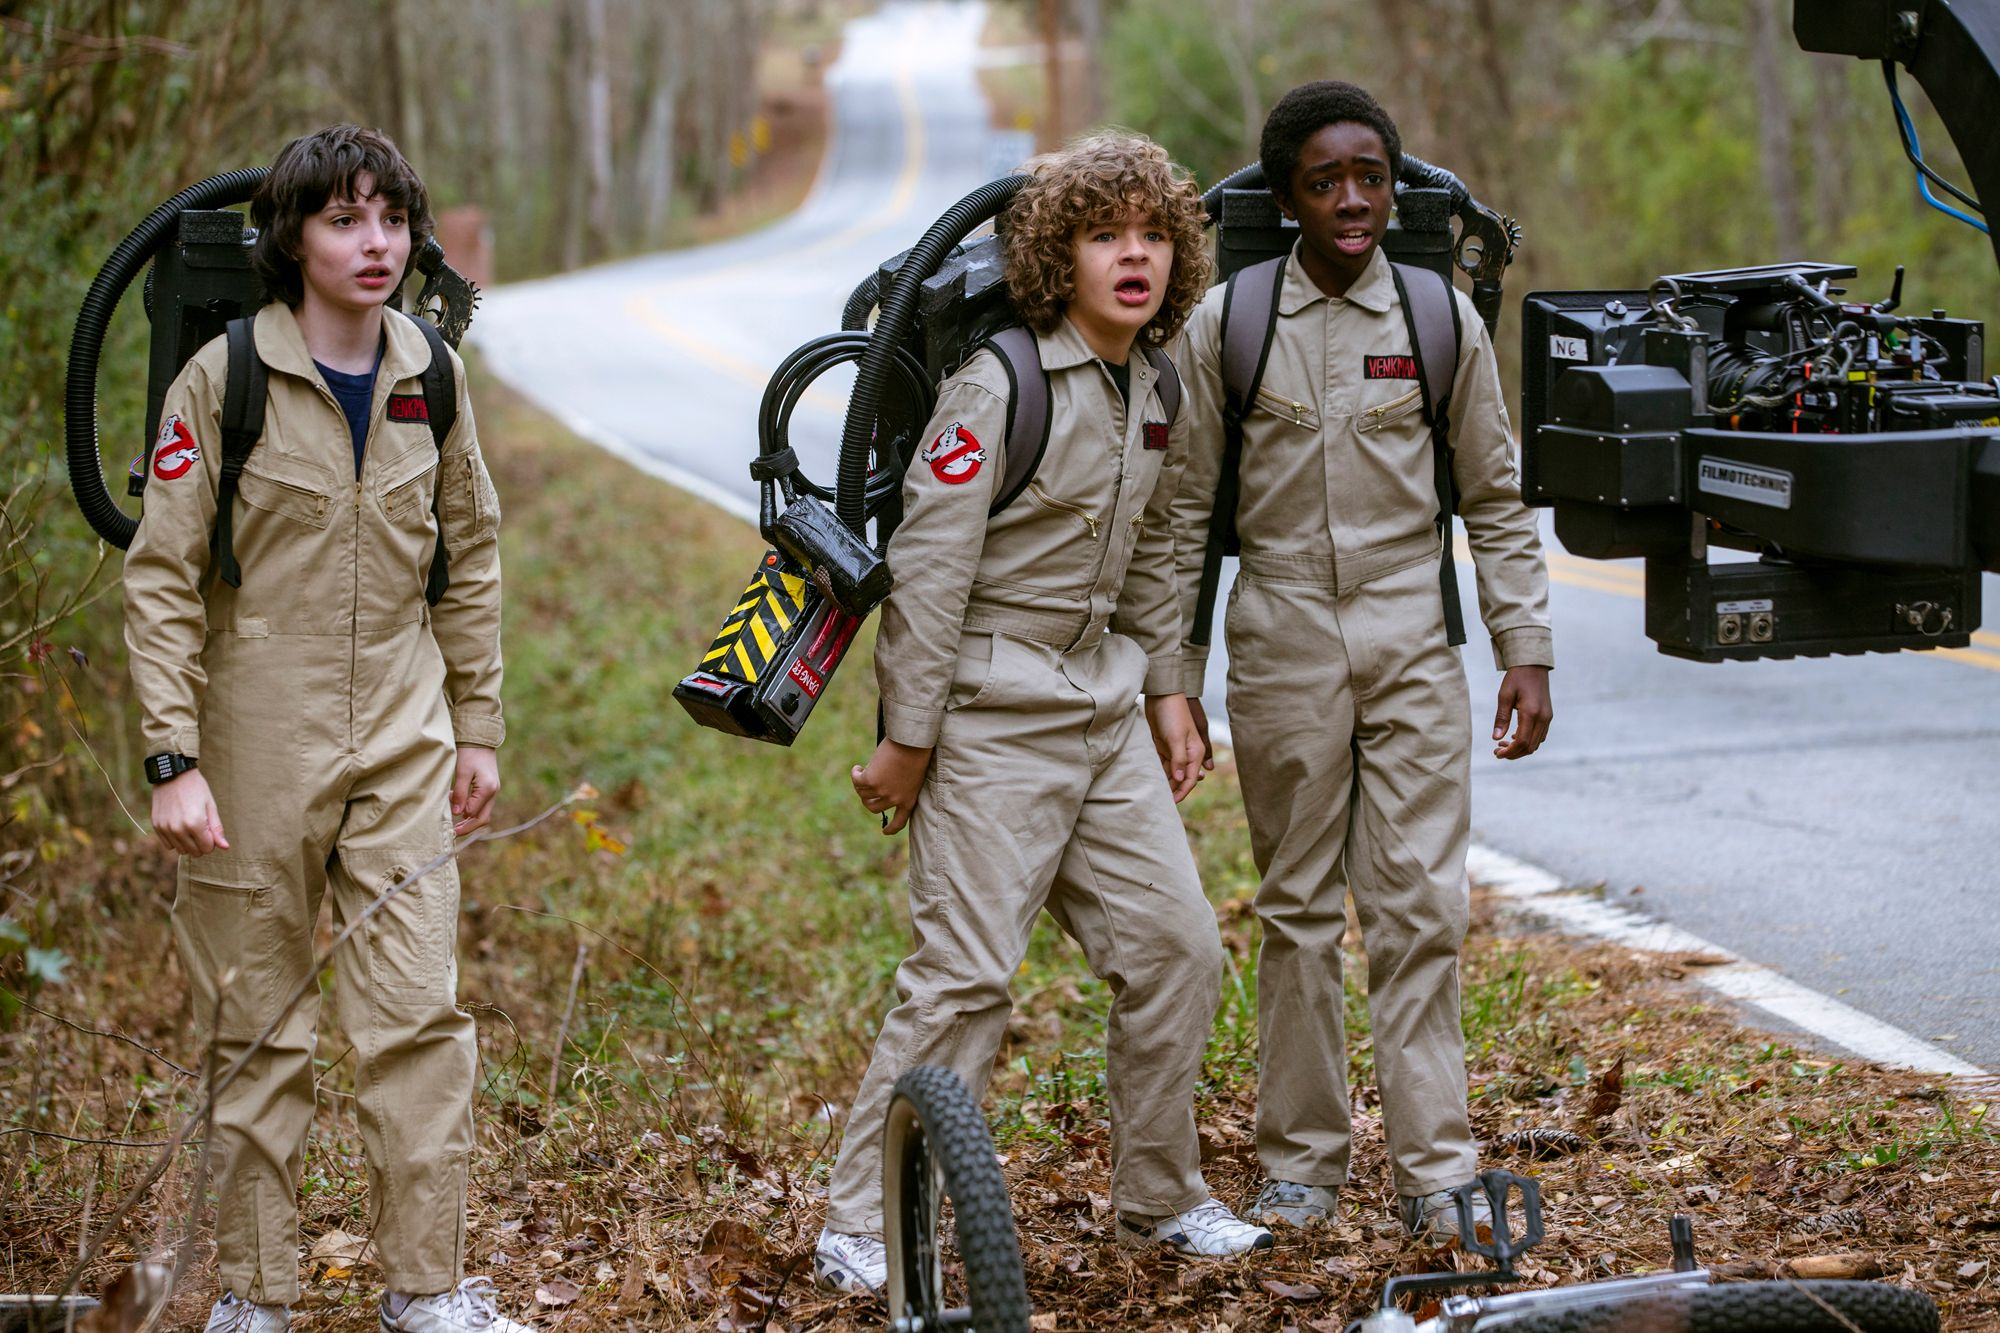 Stranger Things 2 Has Some Major Story Problems